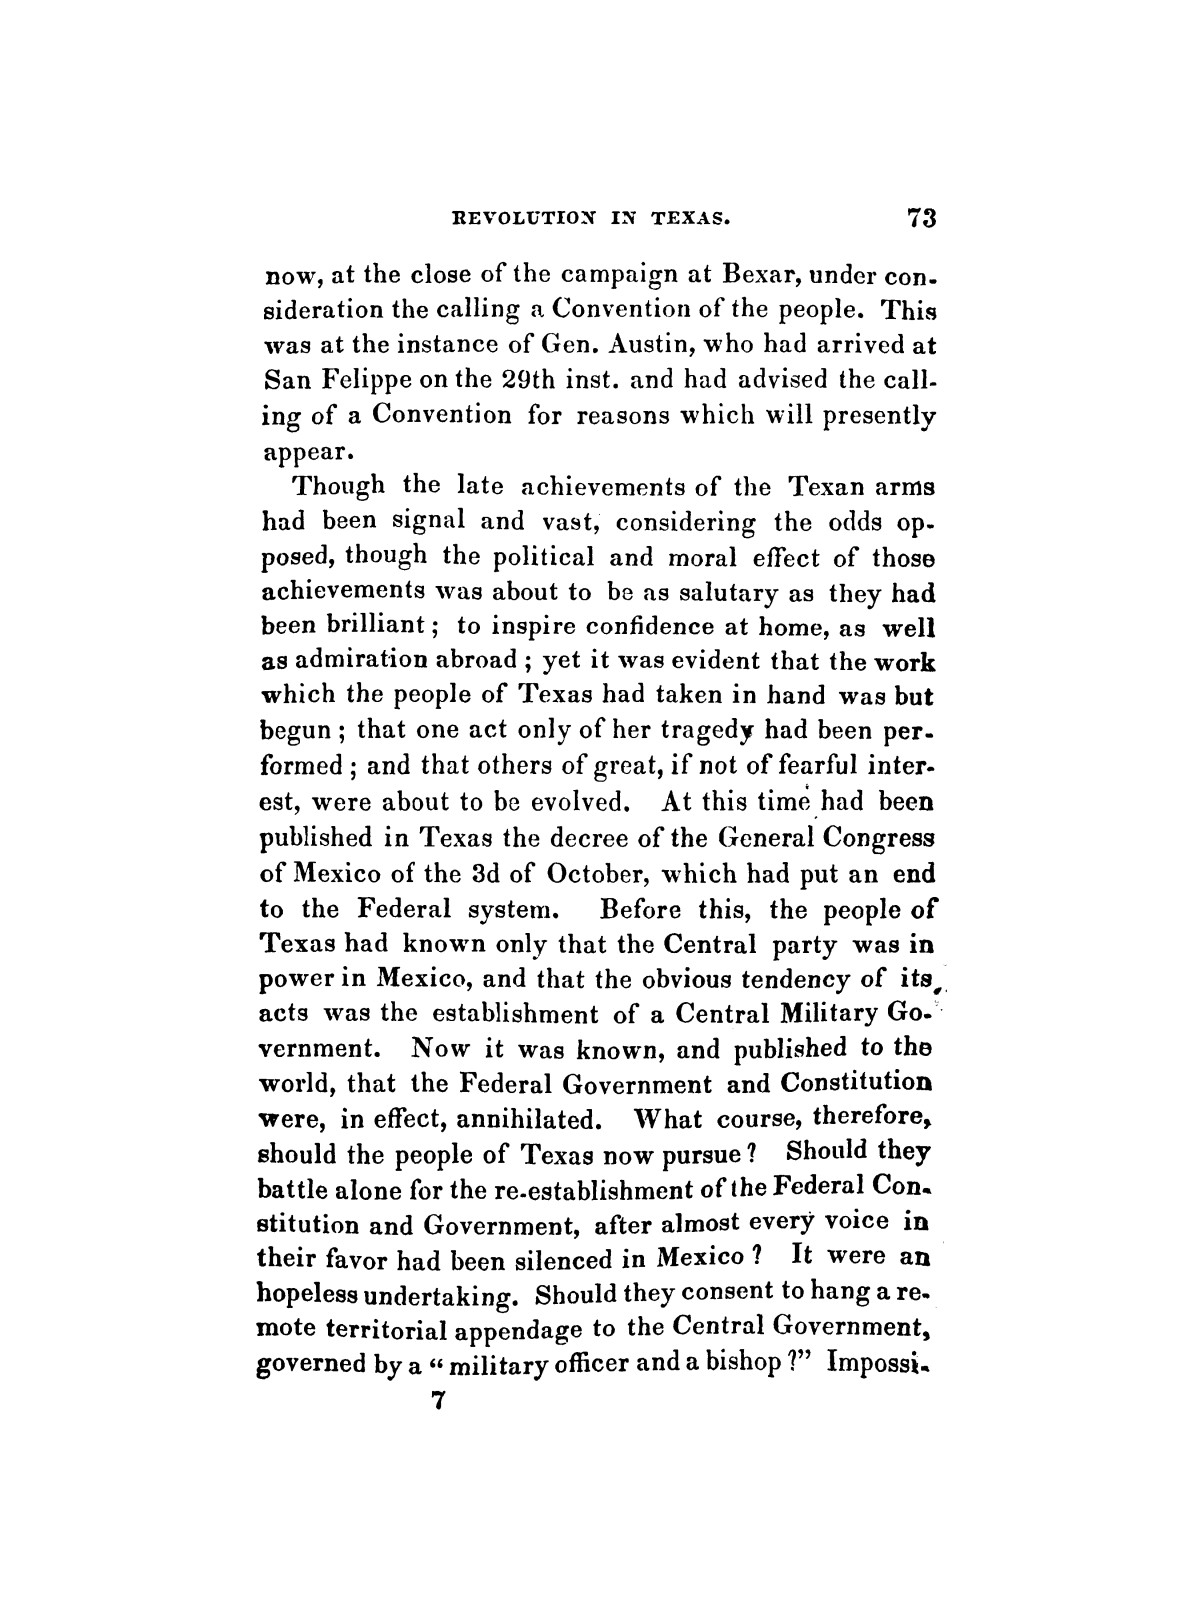 History of the revolution in Texas, particularly of the war of 1835 & '36; together with the latest geographical, topographical, and statistical accounts of the country, from the most authentic sources. Also, an appendix. By the Rev. C. Newell.                                                                                                      [Sequence #]: 85 of 227